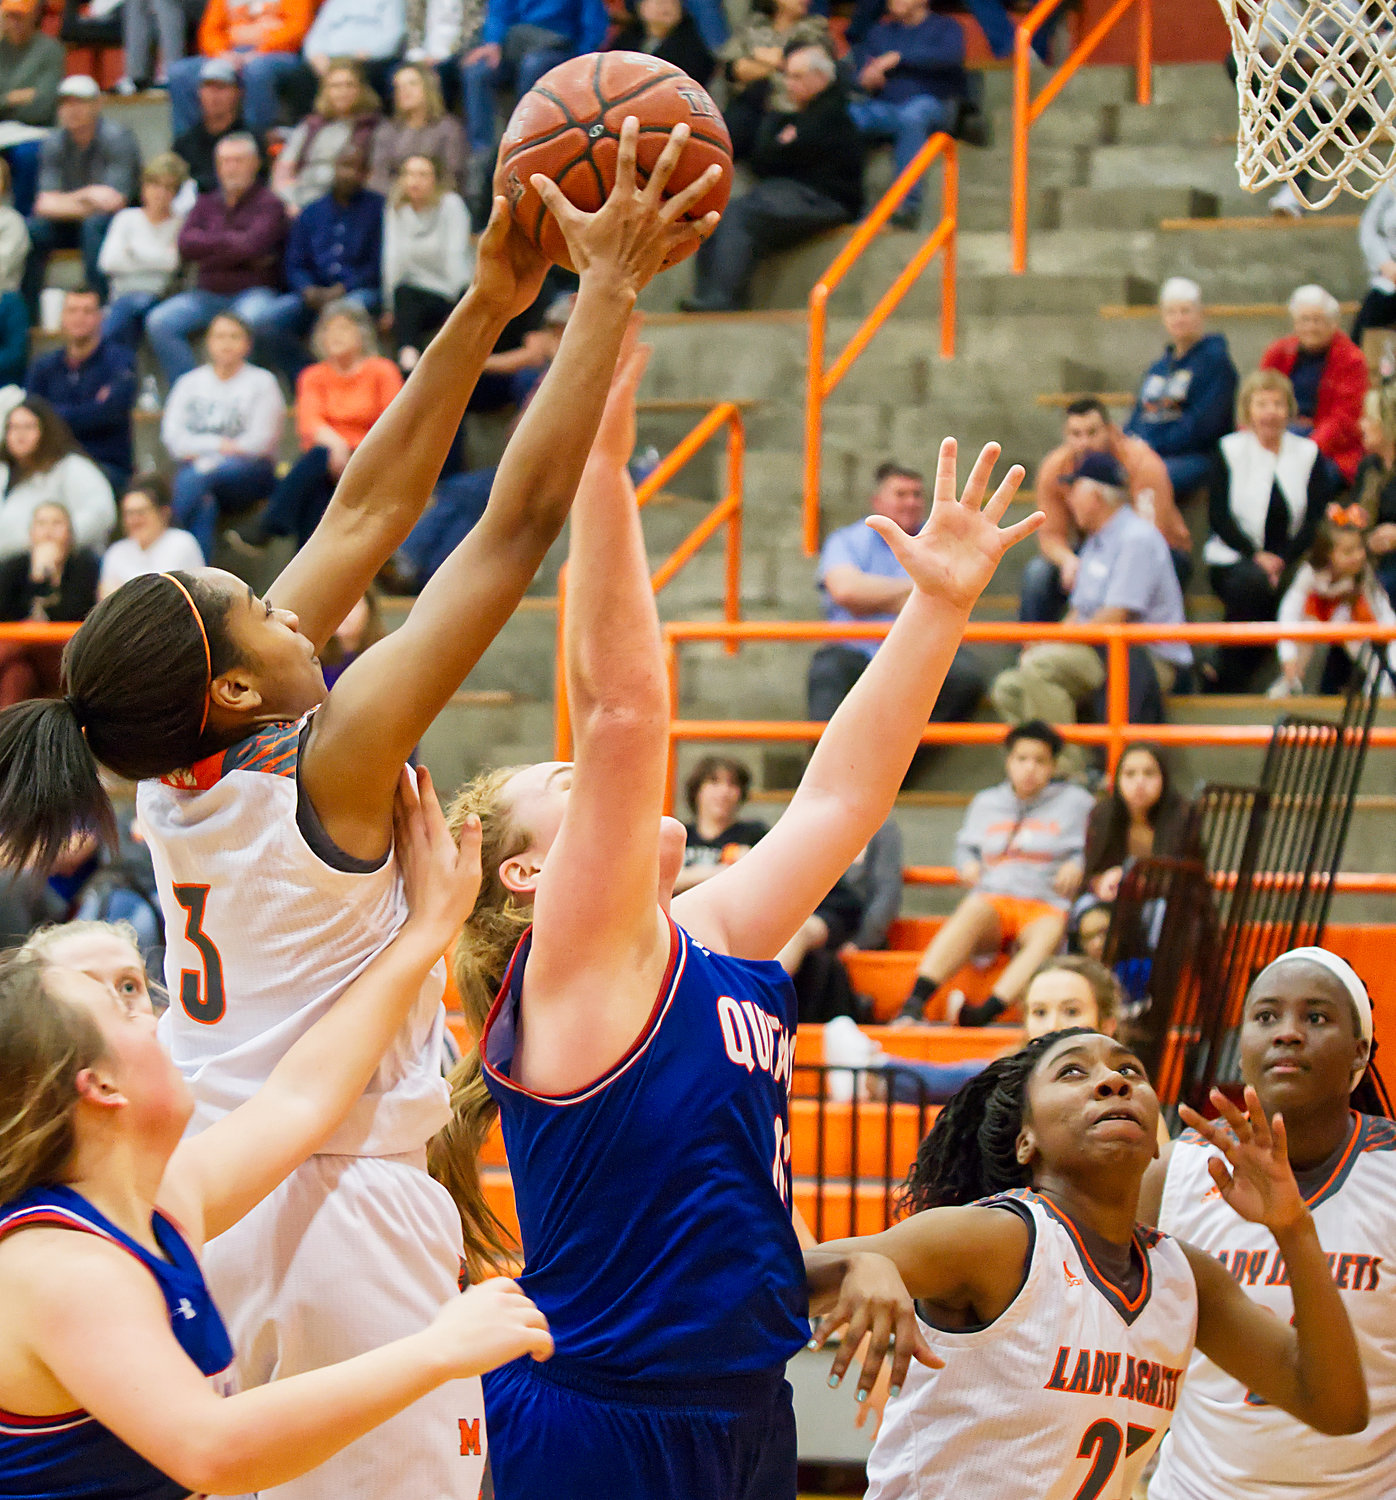 Mineola's Sabria Dean (3) skies for the board over Quitman post Reiny Luman.